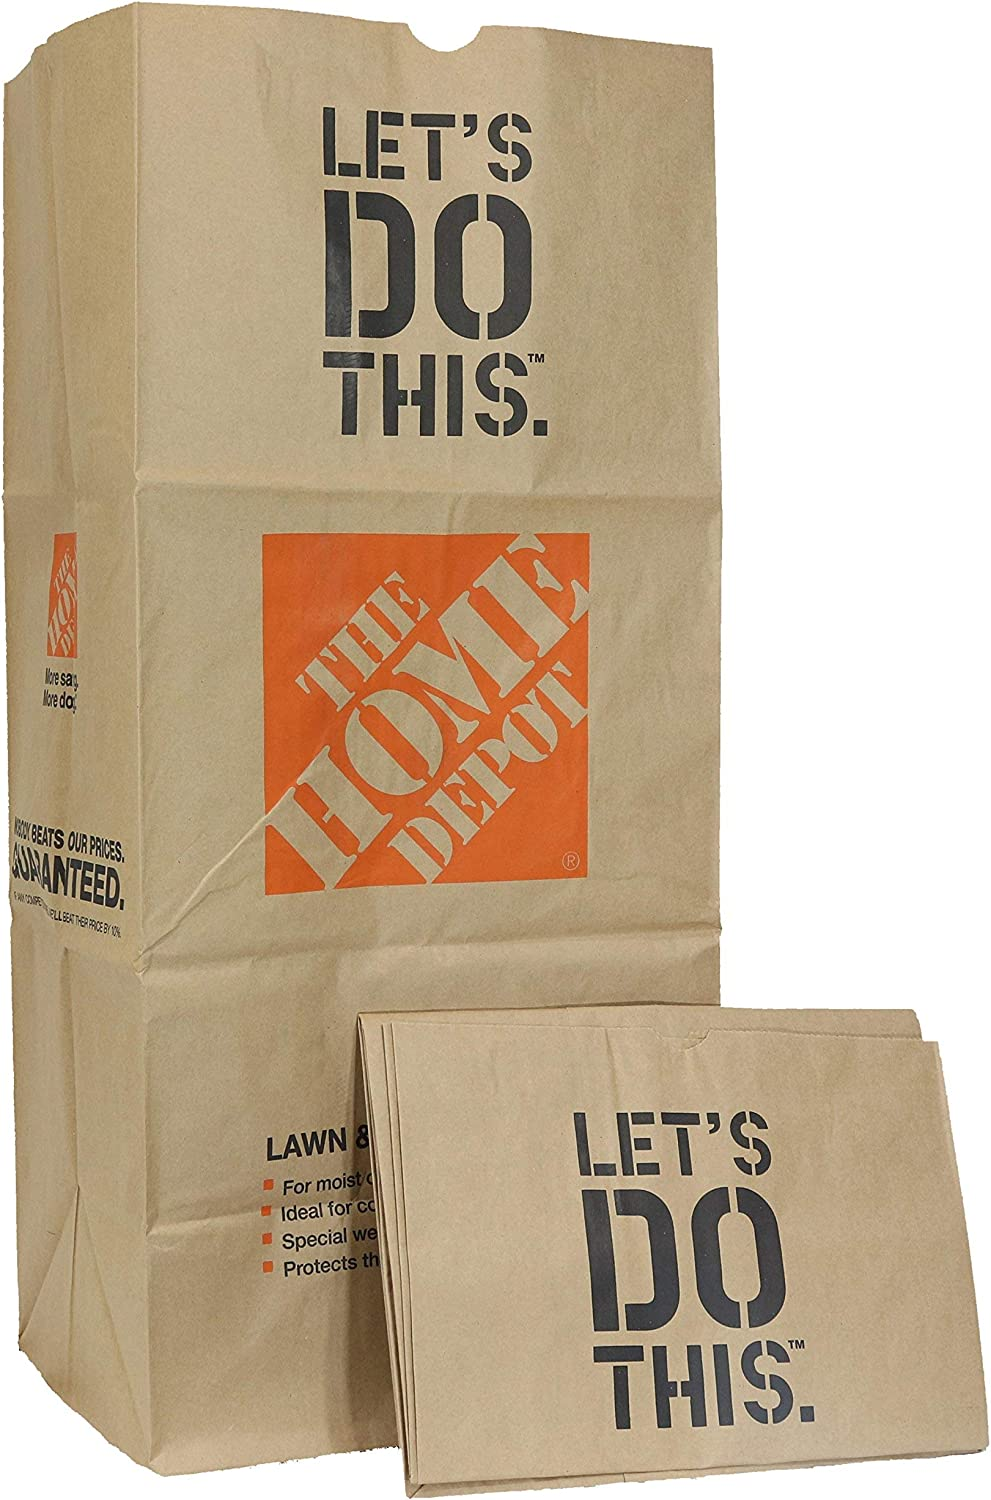 Heavy Duty Brown Paper 30 Gallon Lawn and Refuse Bags for Home and Garden (15 Lawn Bags)